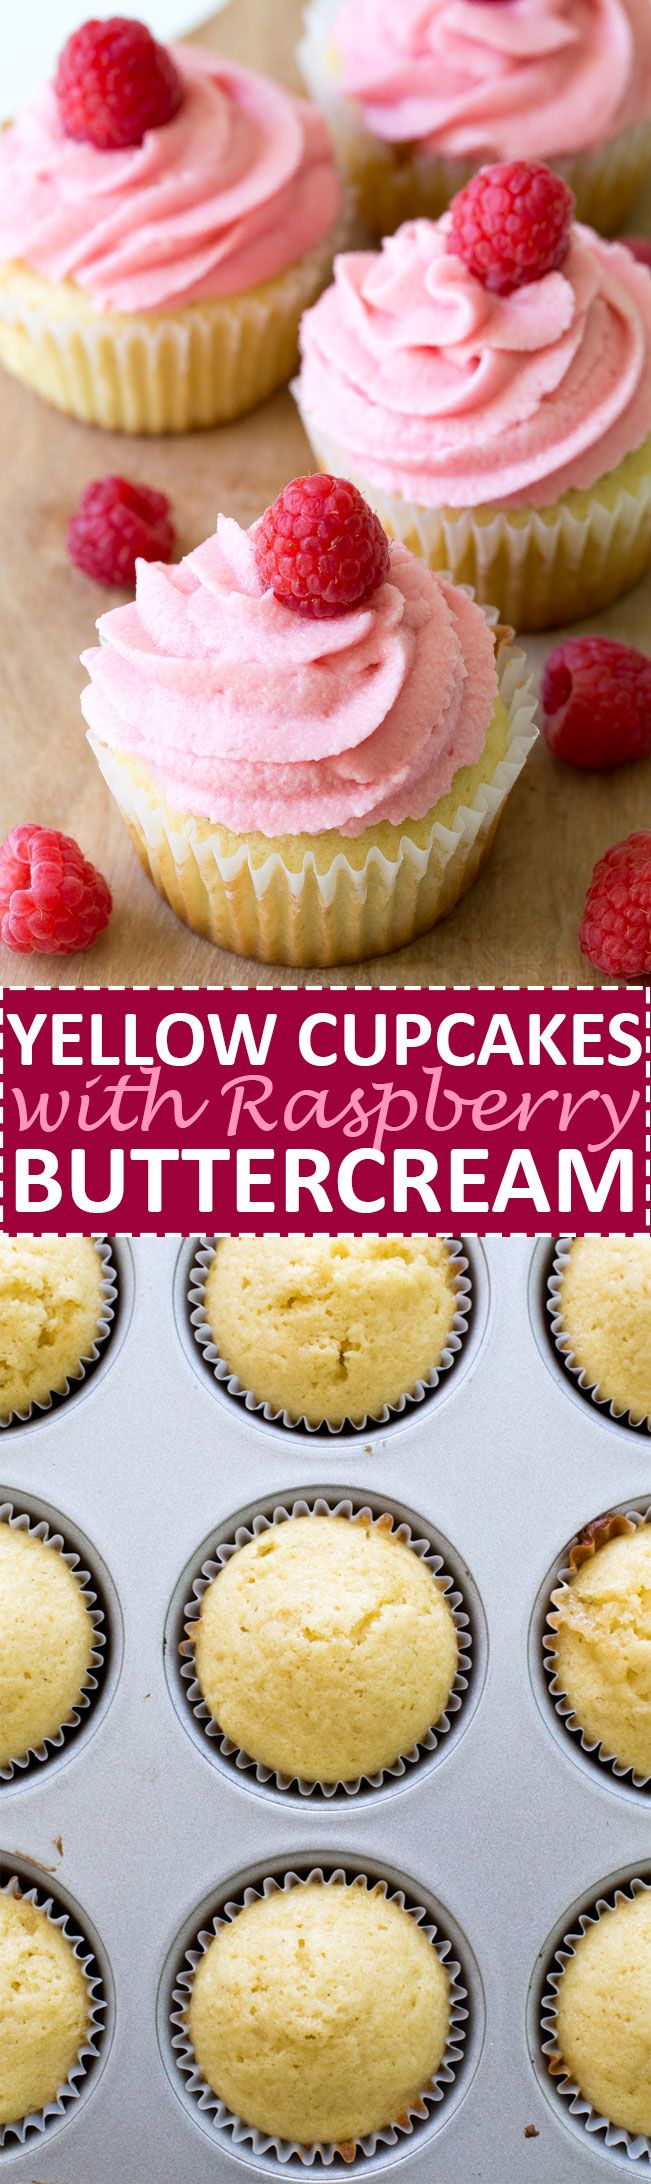 Yellow Cupcakes with Raspberry Buttercream